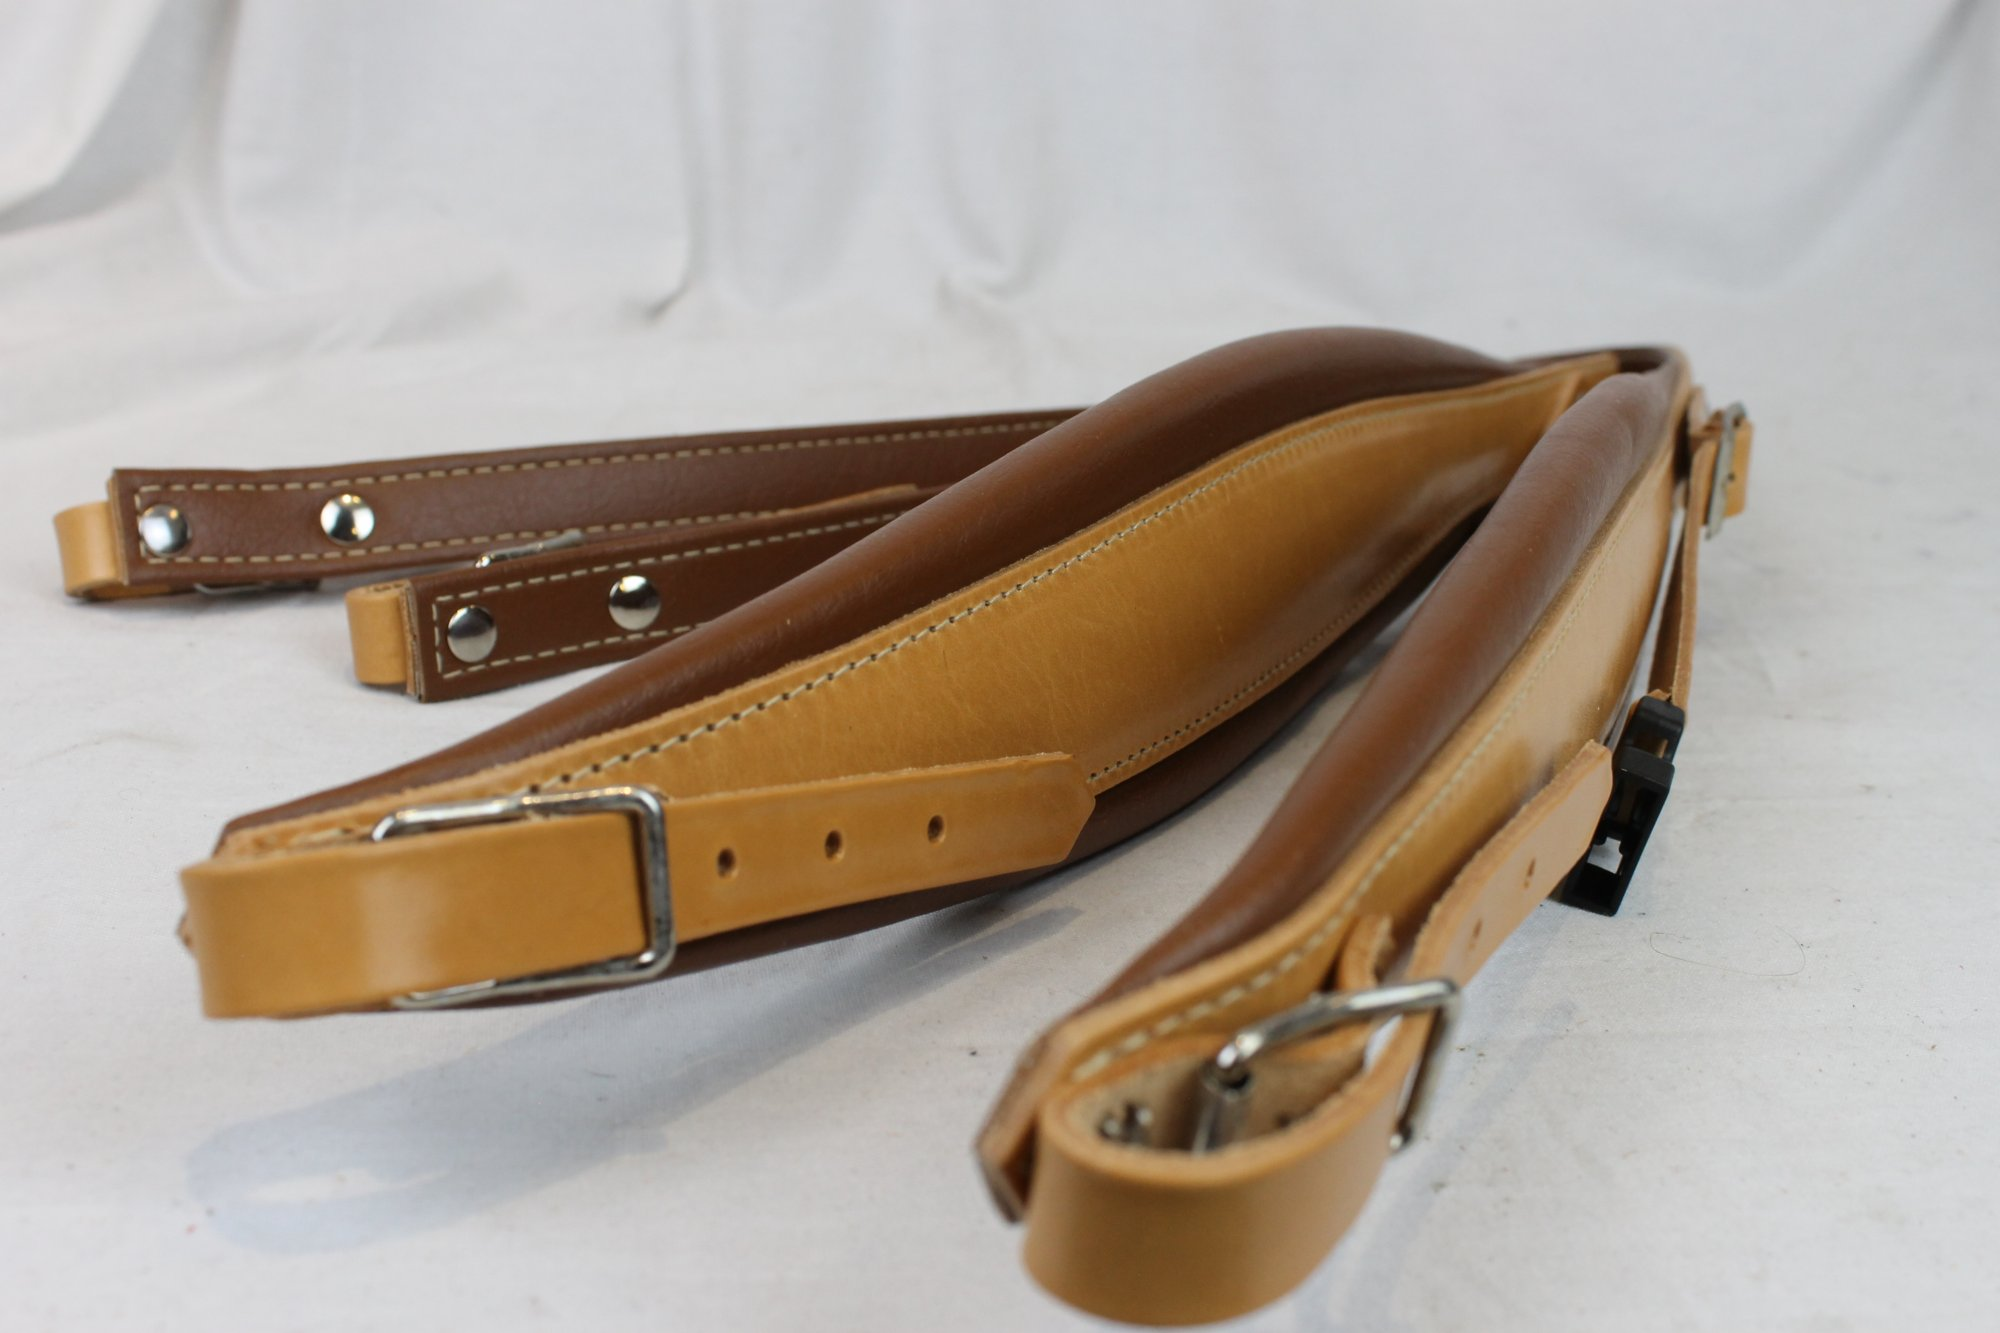 NEW Tan Leather Fuselli Accordion Shoulder Straps With Back Straps Width (9cm / 3.5 inch) Length (95cm-115cm / 37.4-45.3 inch)